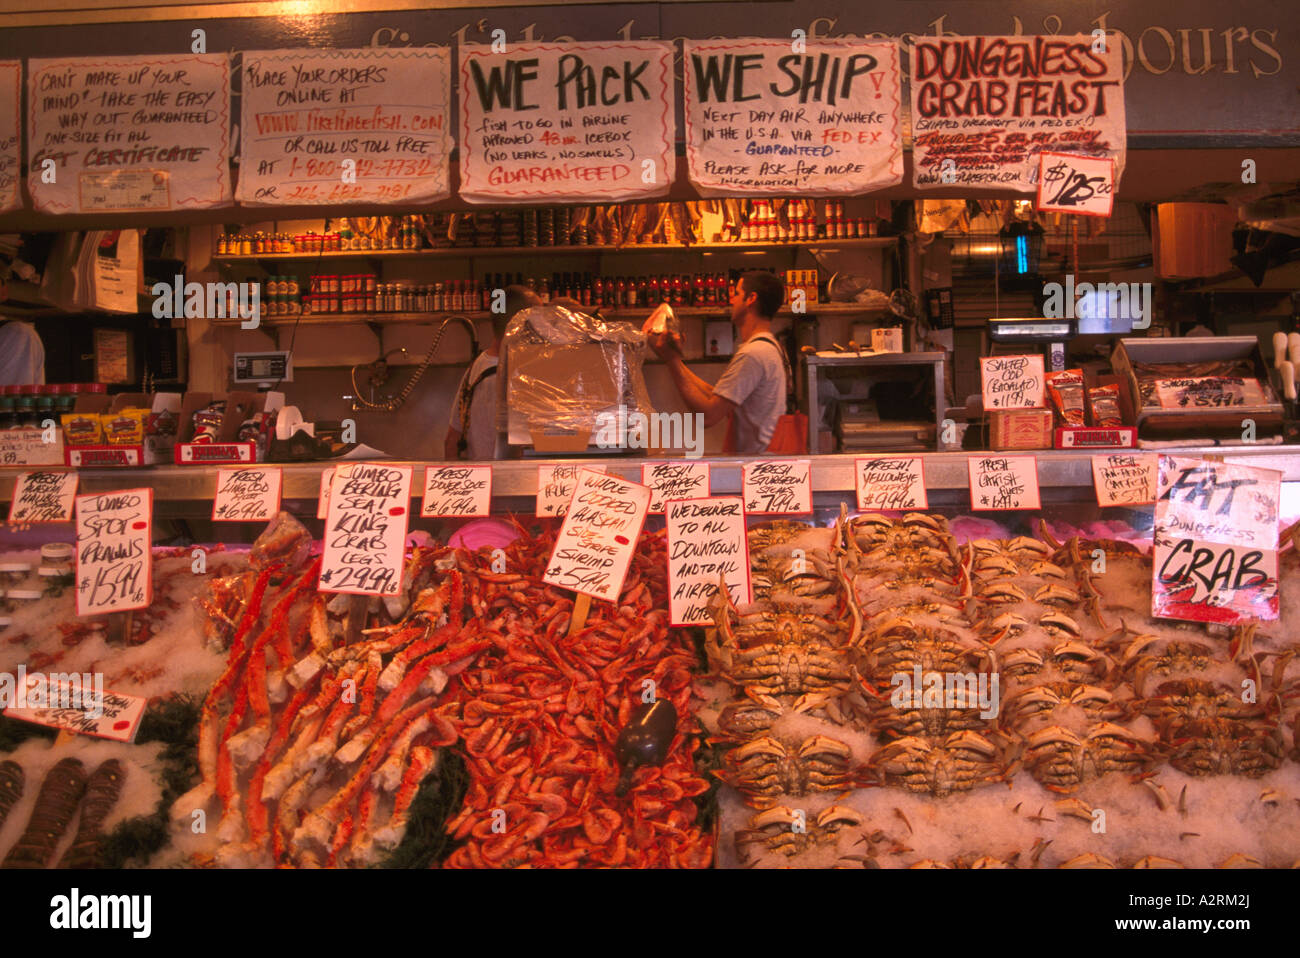 Pike Place Market, Seattle, Washington State, USA - Fresh Fish and Seafood for Sale on Ice at Local Fishmonger - Stock Image